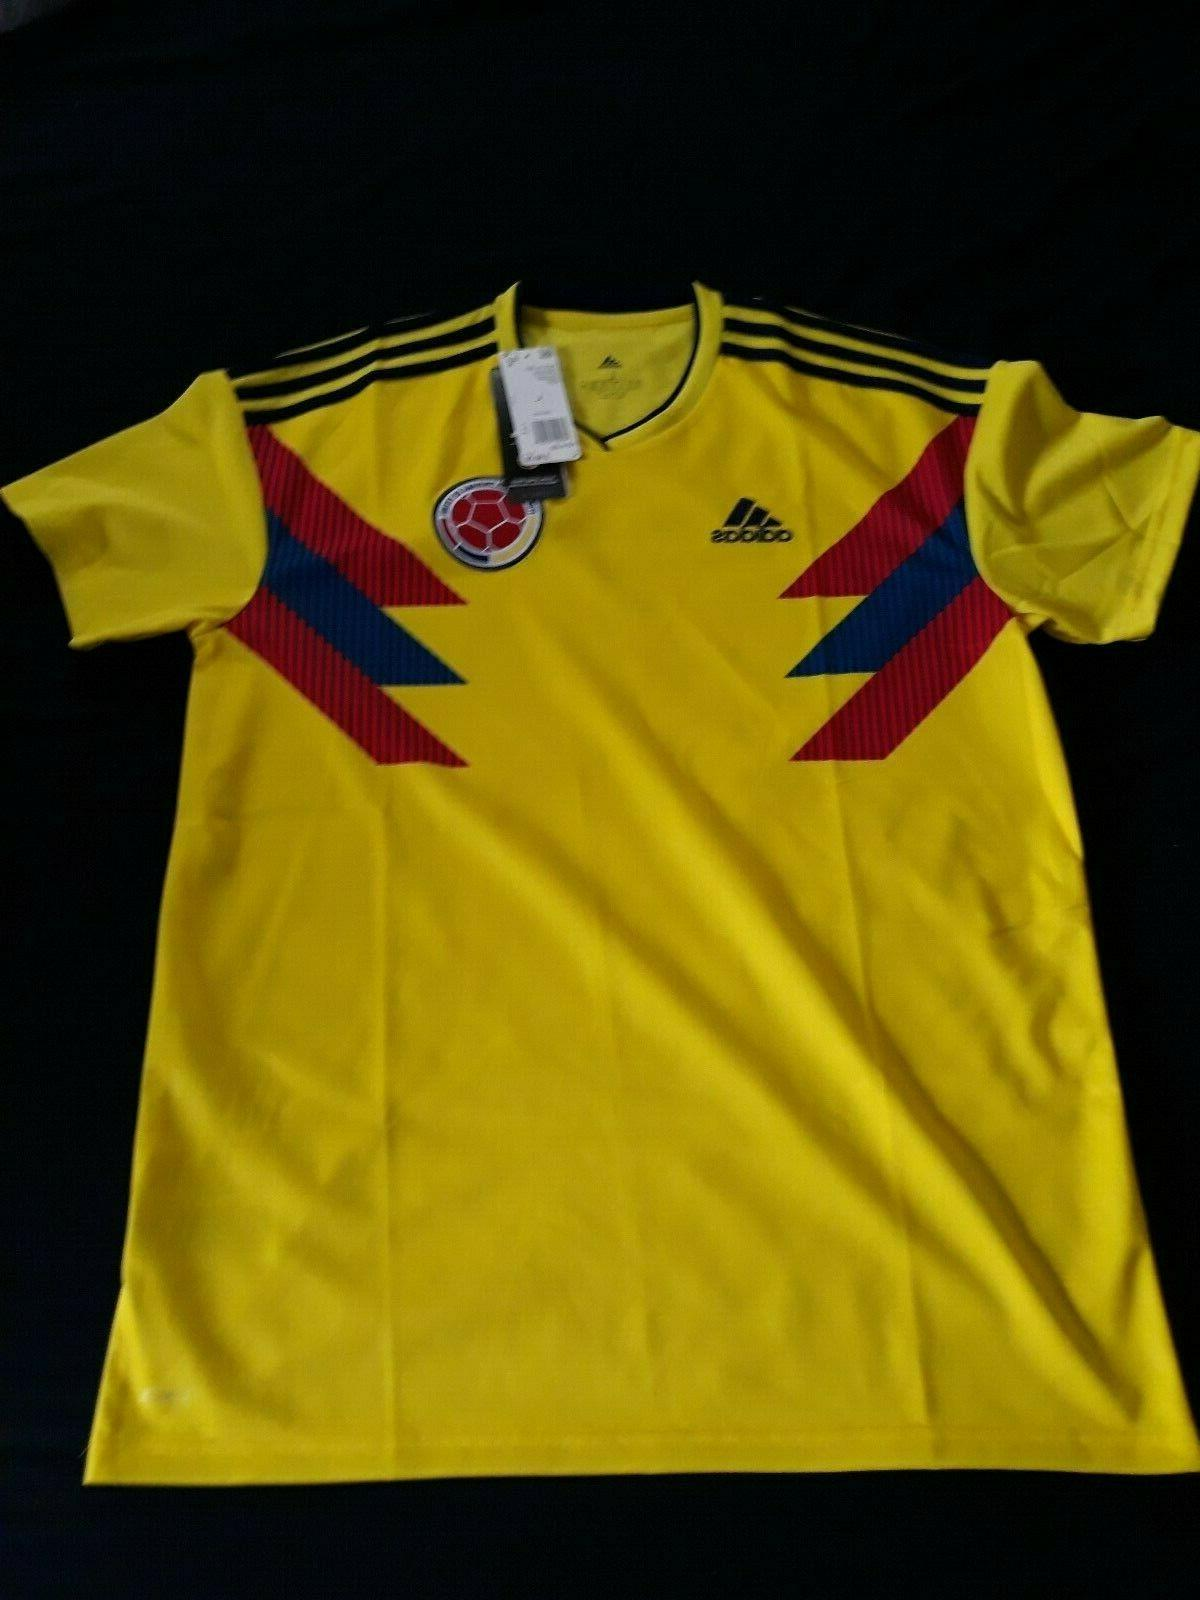 Colombia Men's Adidas Soccer Home Jersey Model Retail $90 Tags